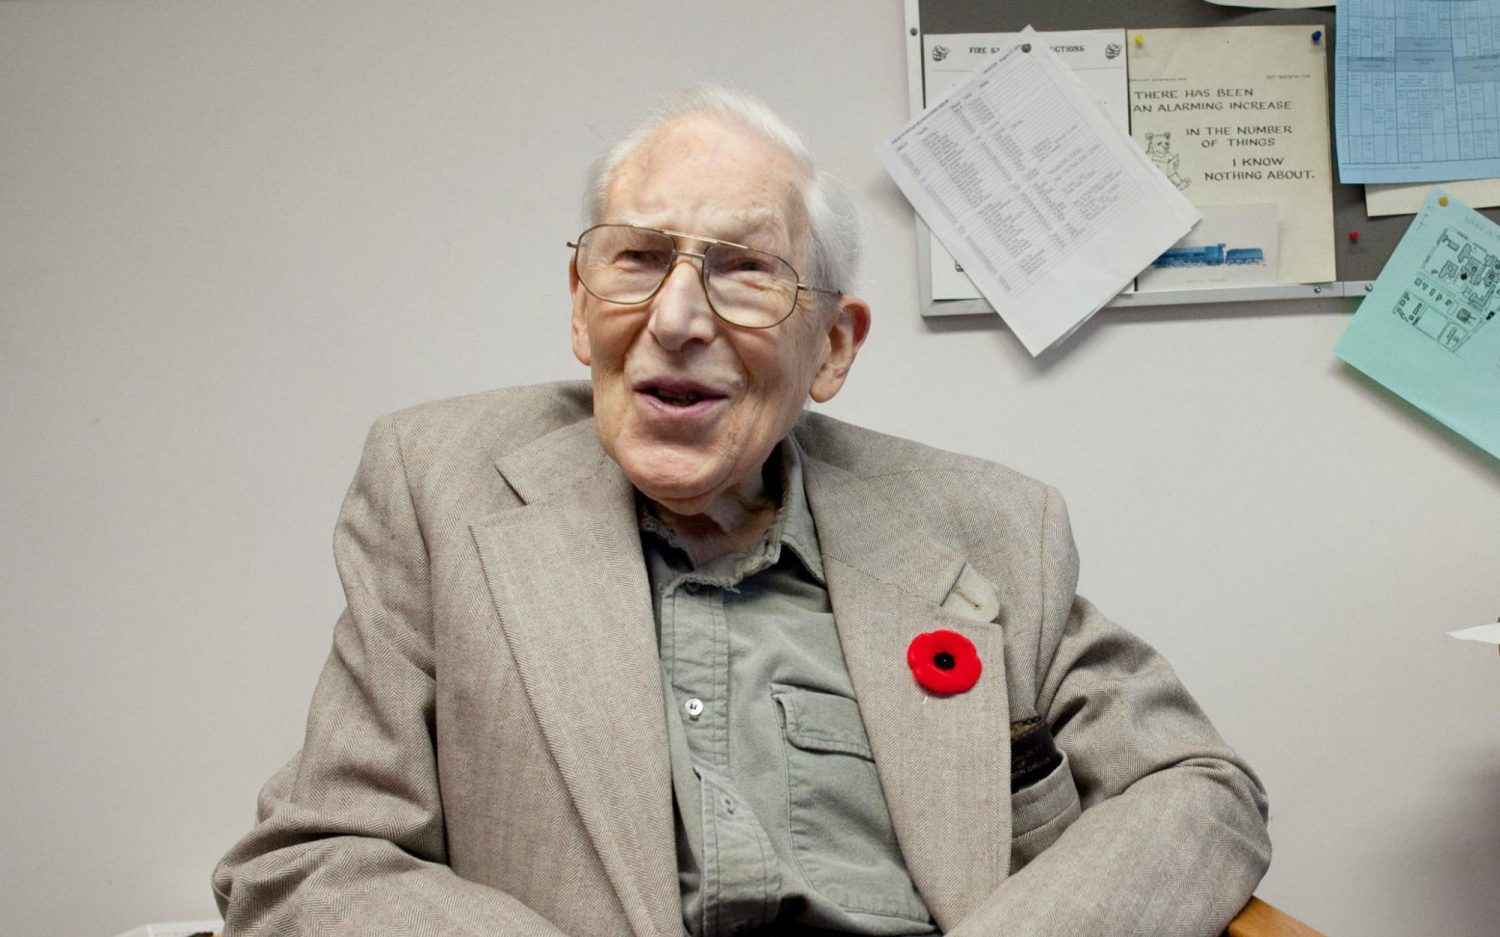 Theologian and churchman J.I. Packer dies at age 93